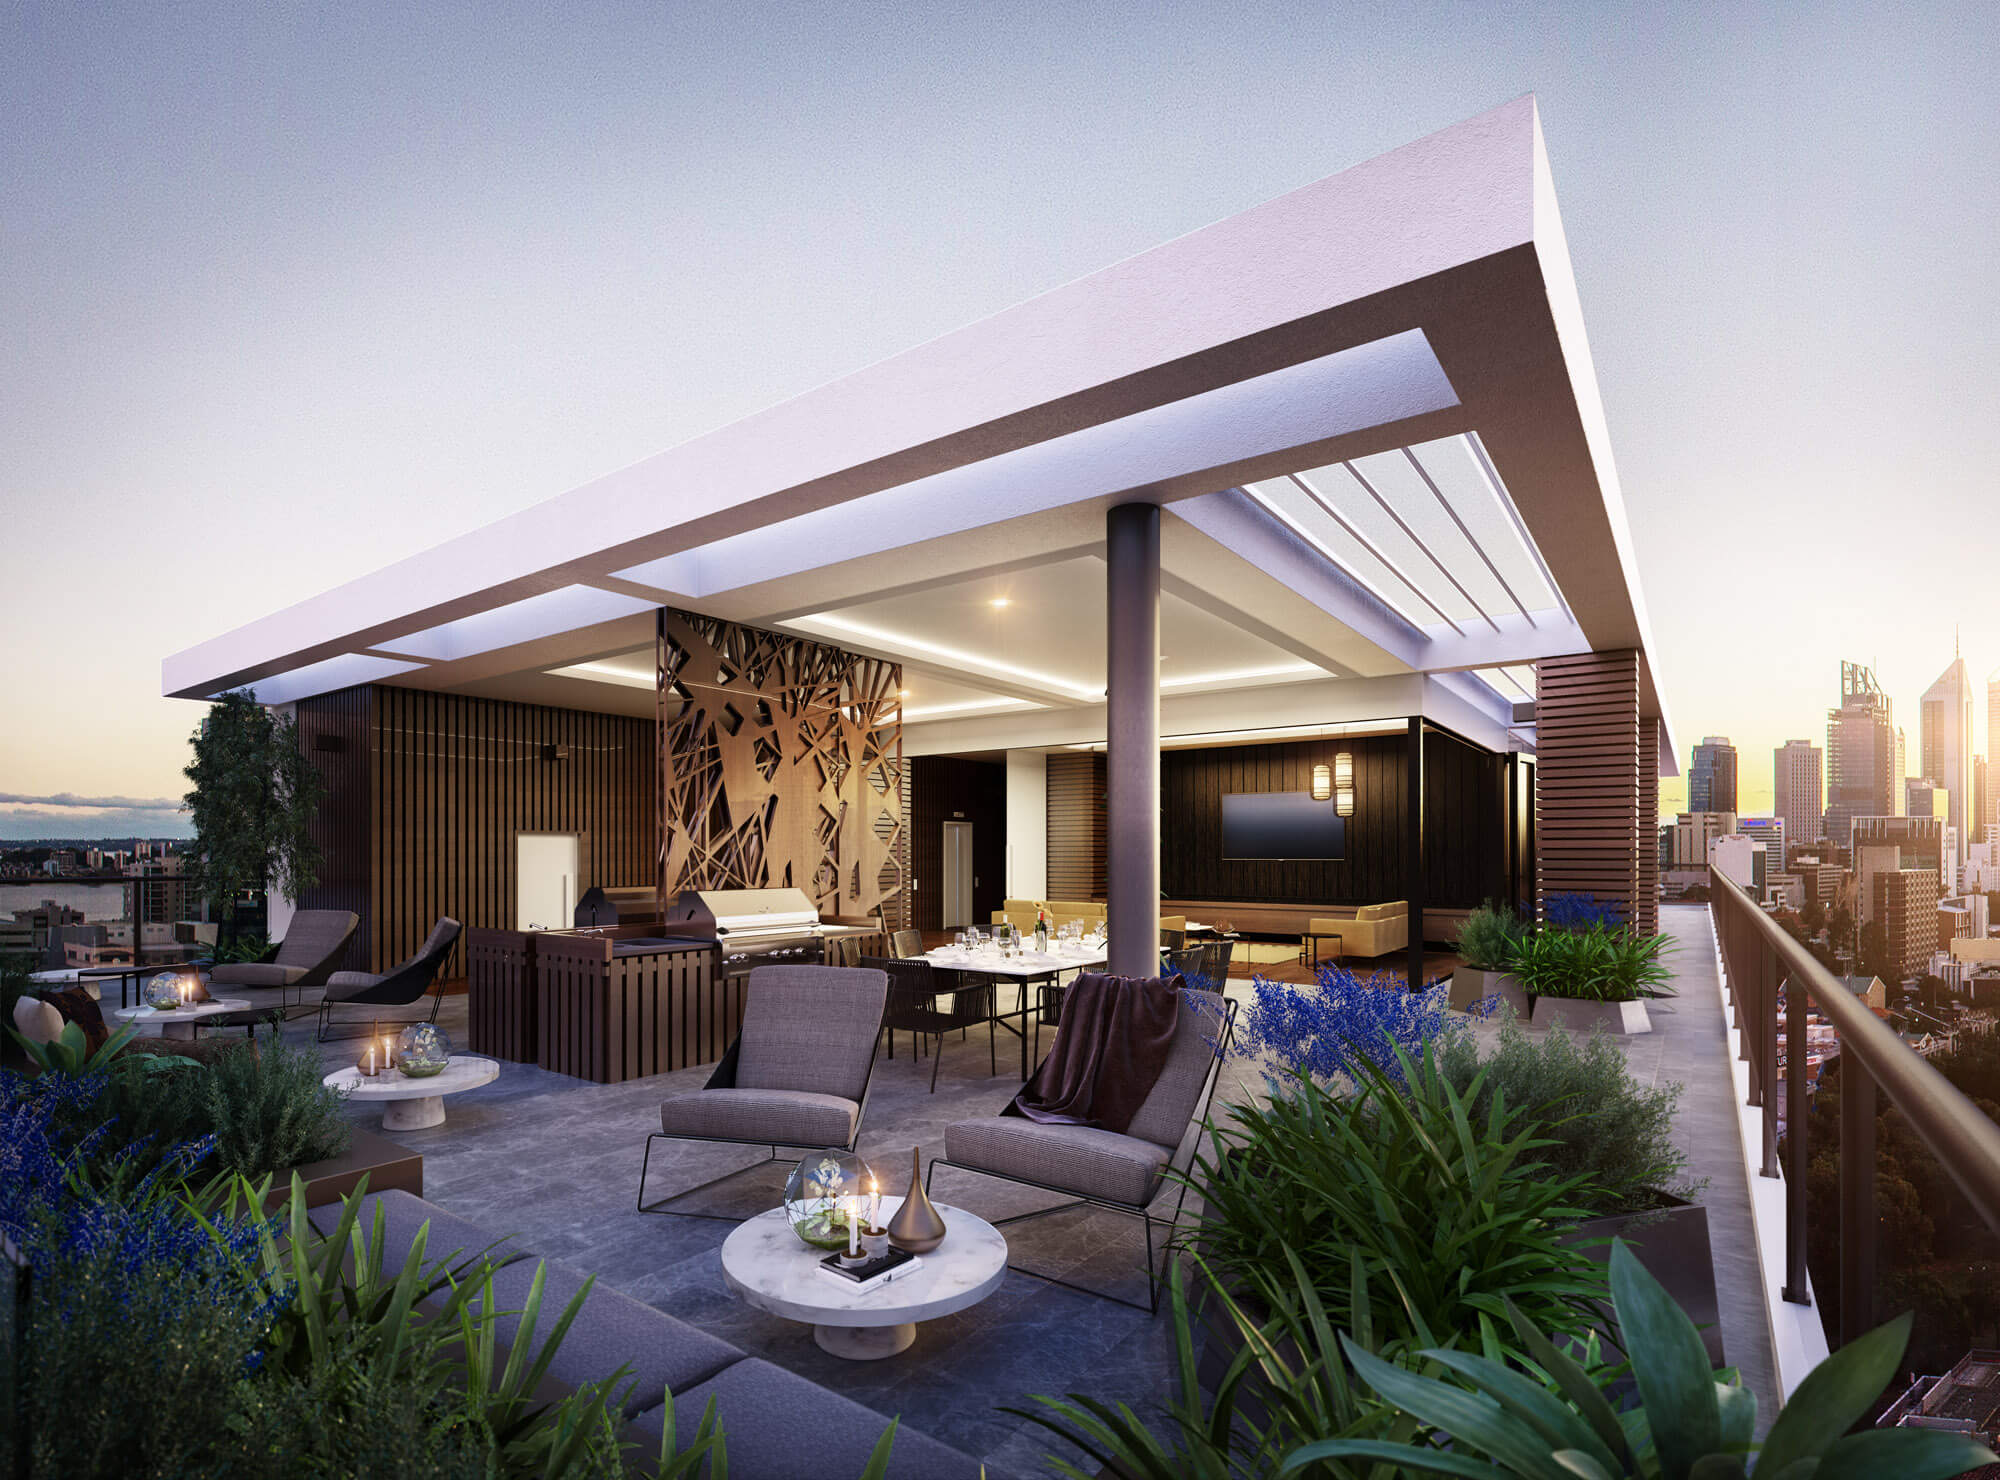 New Apartments for Sale Perth & Off the Plan Apartments | Blackburne